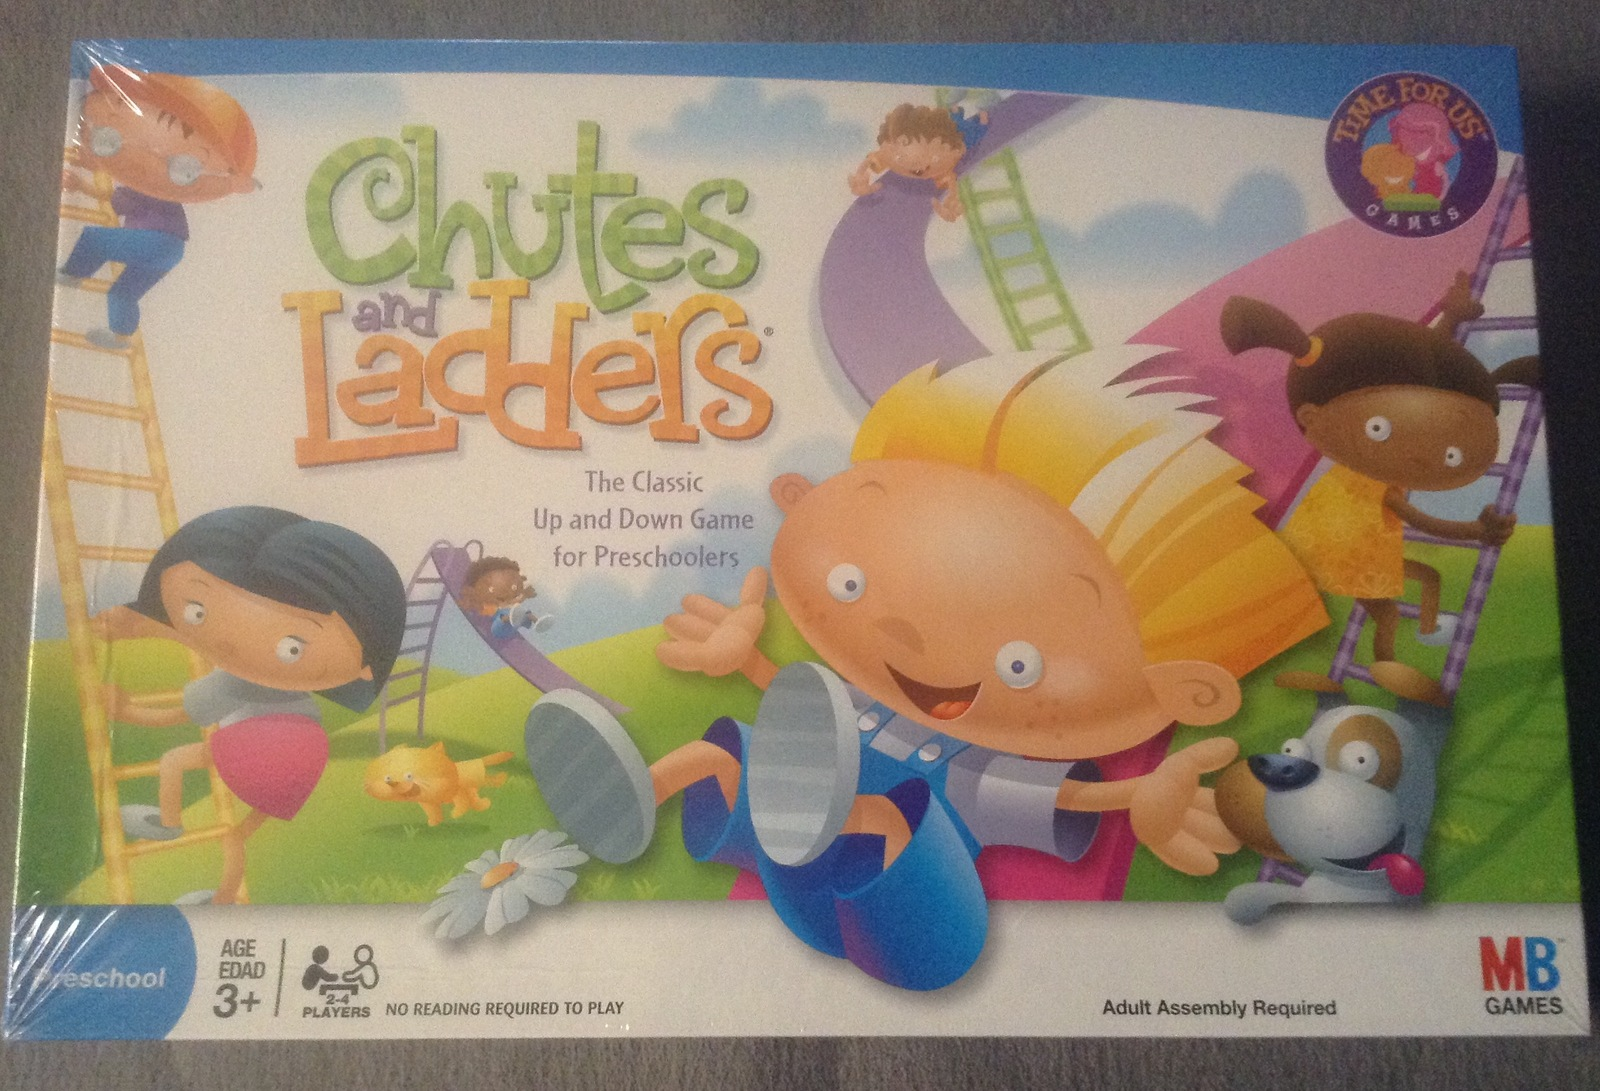 Chutes and Ladders Classic Board Game for Preschoolers 3+ Hasbro MB Games